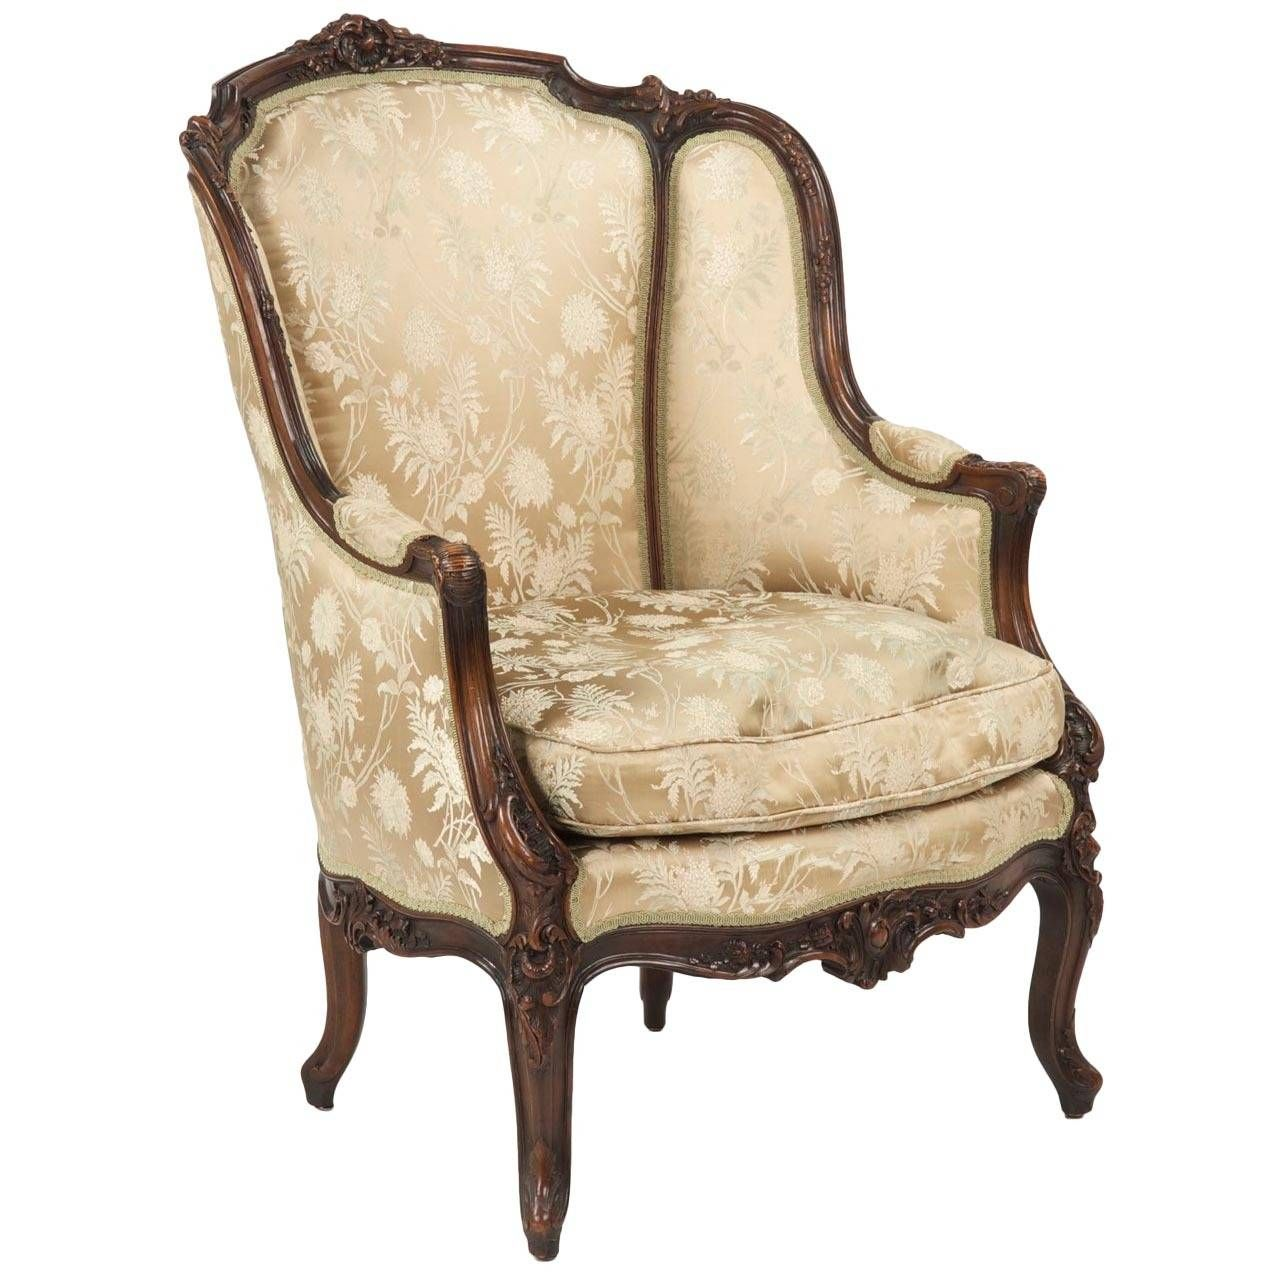 19th Century Rococo Revival Antique Bergere Armchair in Louis XV Taste |  From a unique collection - 19th Century Rococo Revival Antique Bergere Armchair In Louis XV